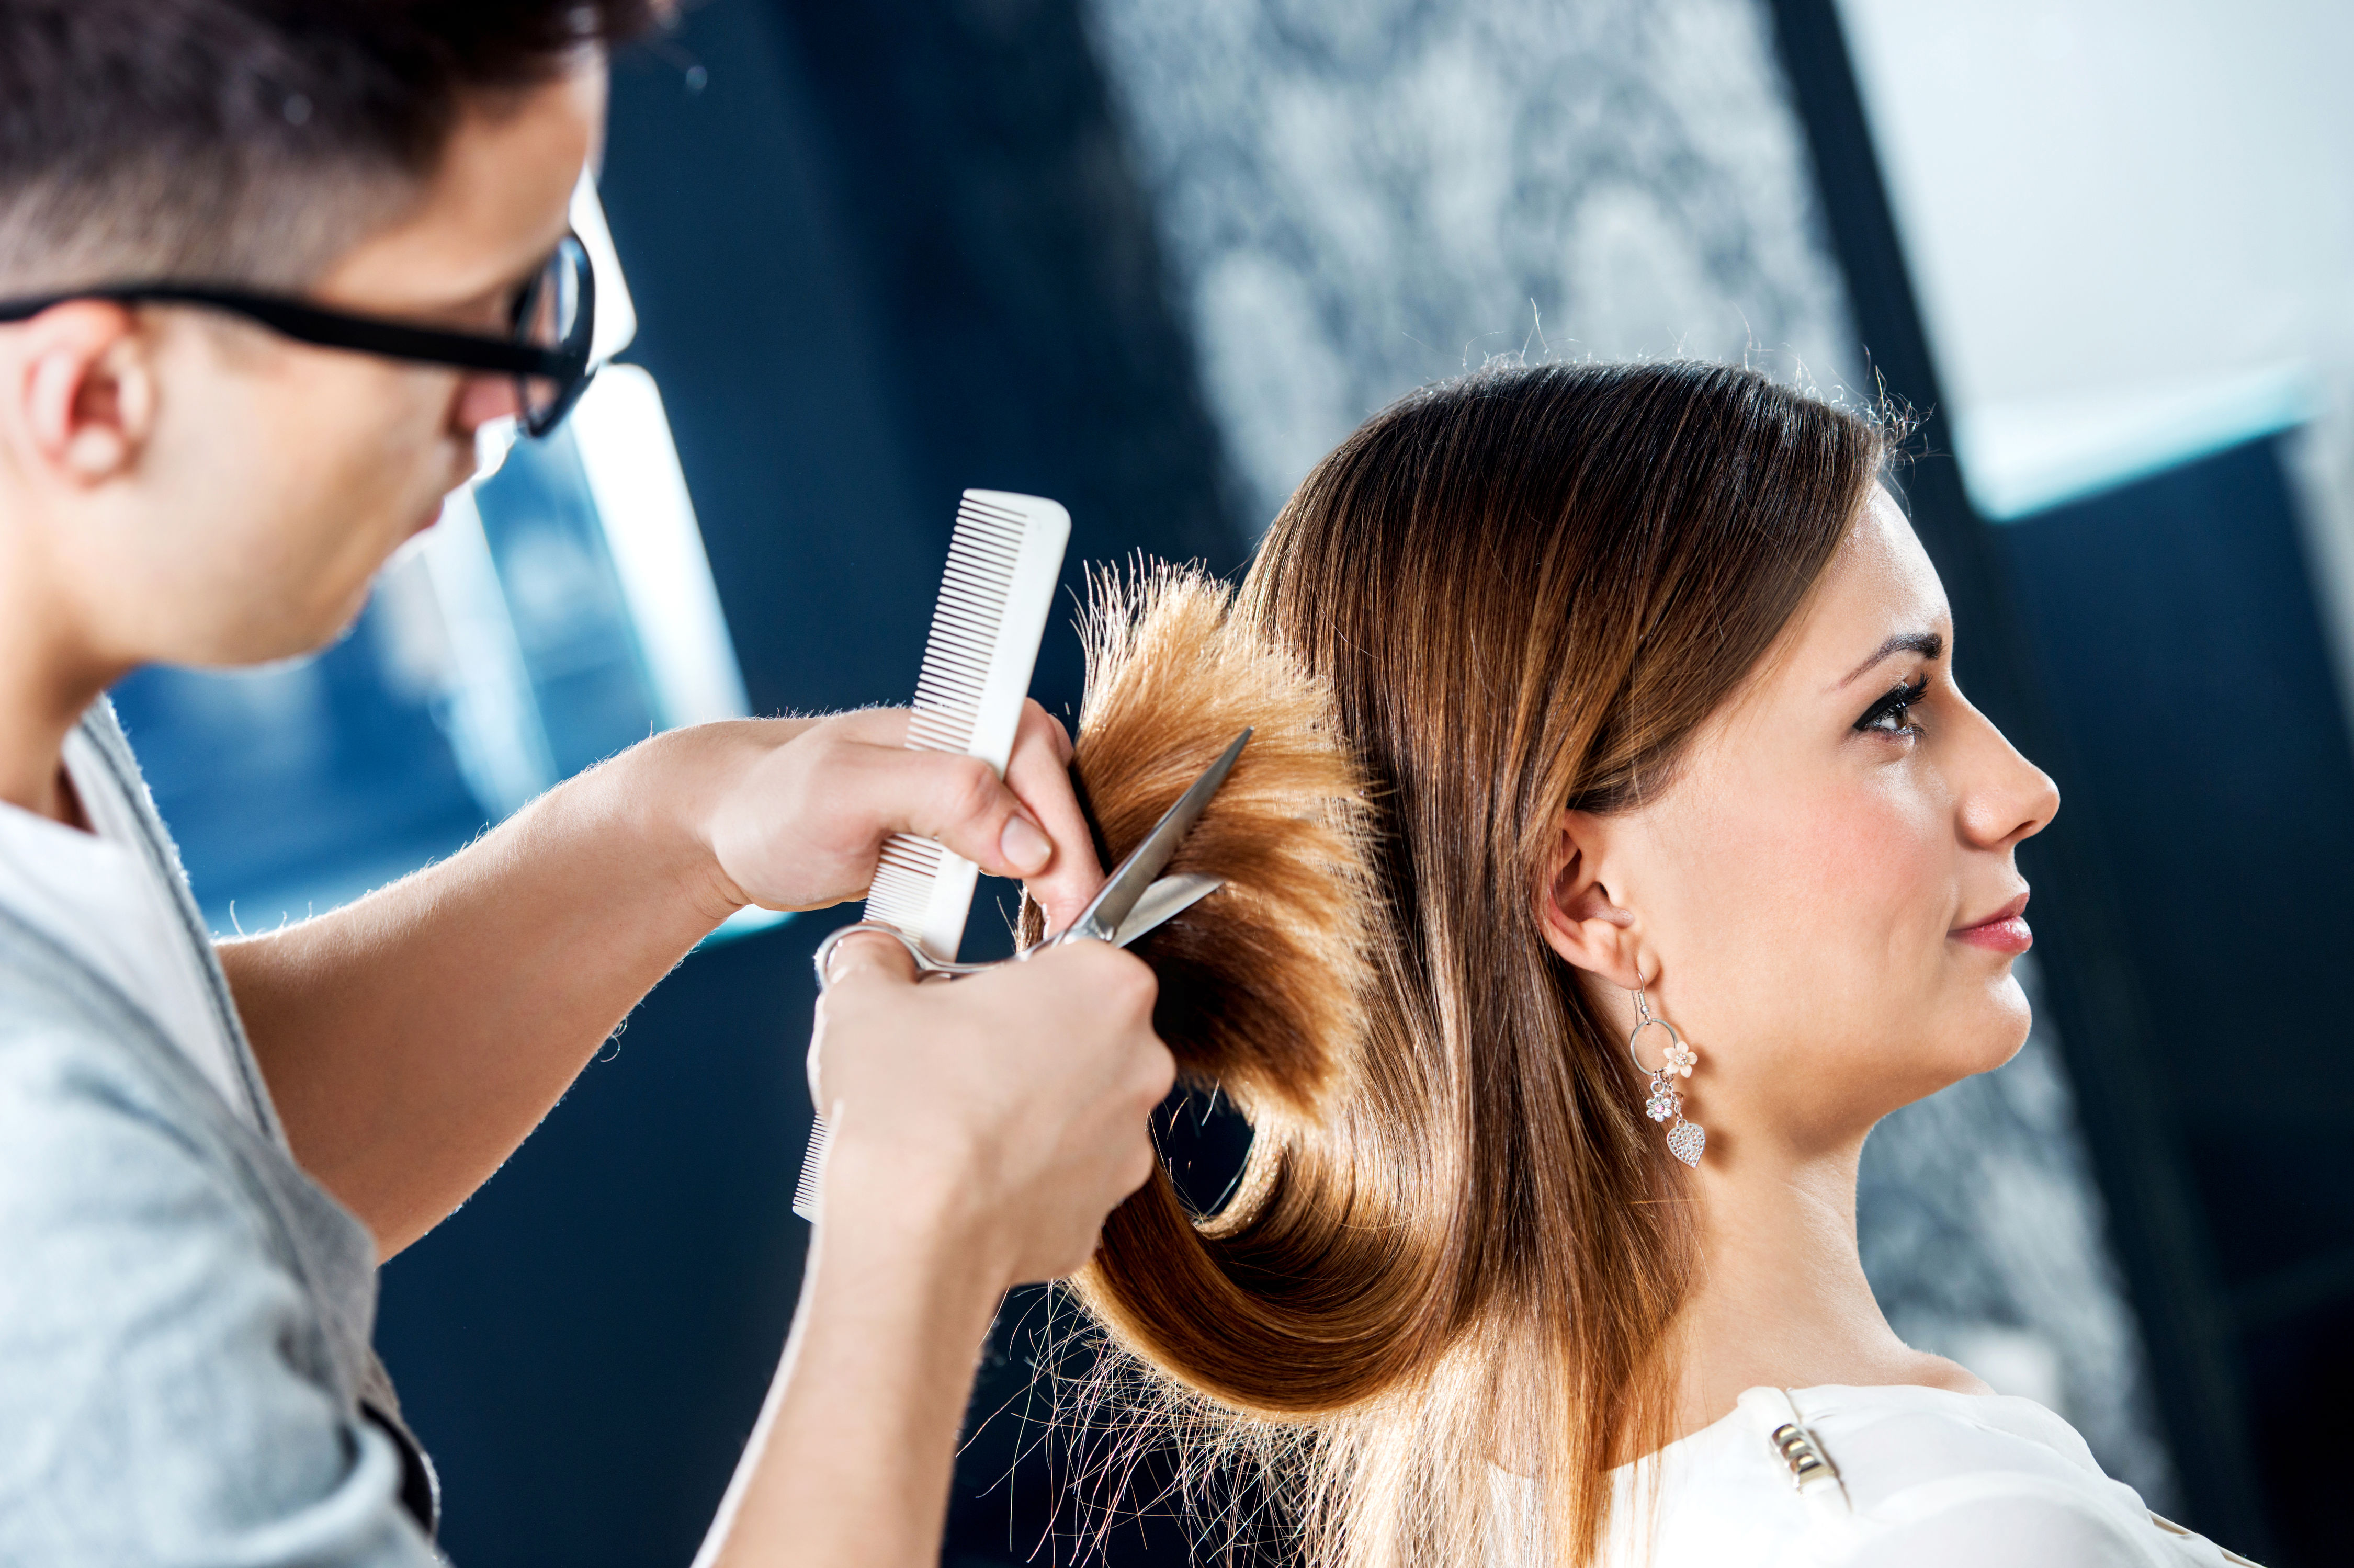 Why We'll Never Get Our Hair Cut Wet Again